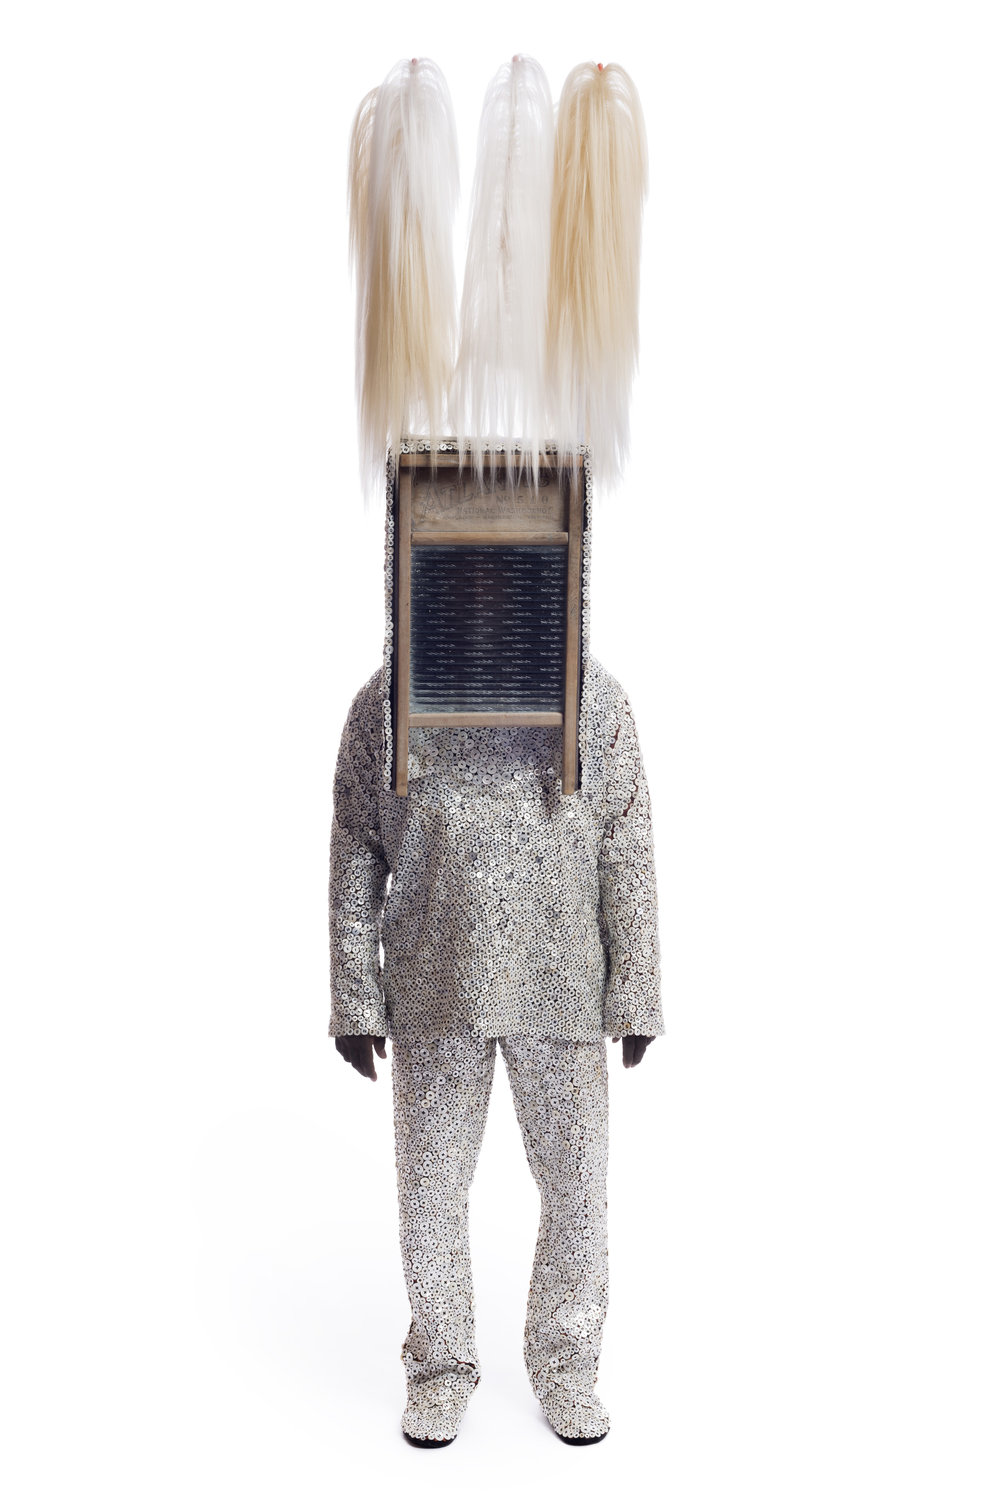 Nick Cave  Soundsuit  (2015). James Prinz photography.